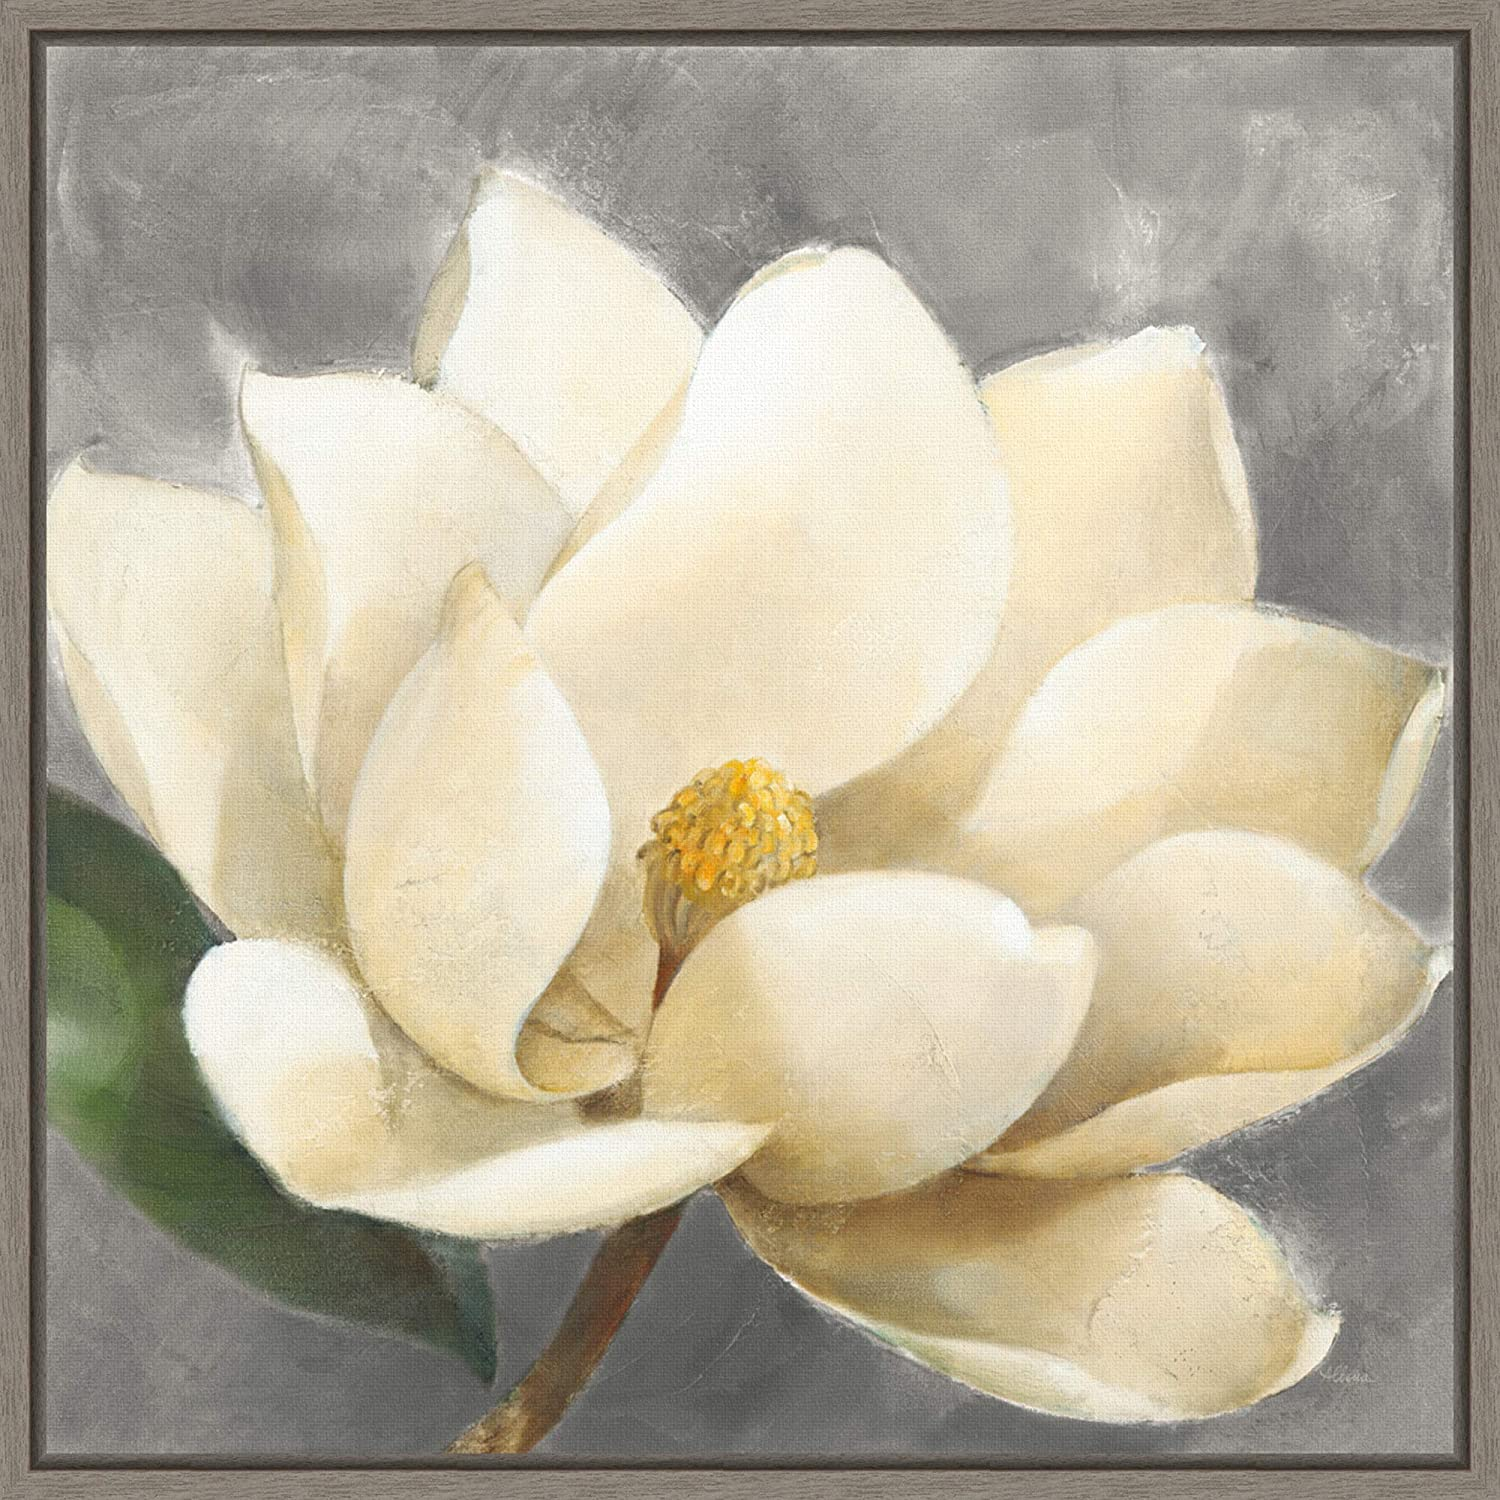 Blue Magnolia Blossom Stretched Canvas Print Framed Wall Home Office Shop Decor